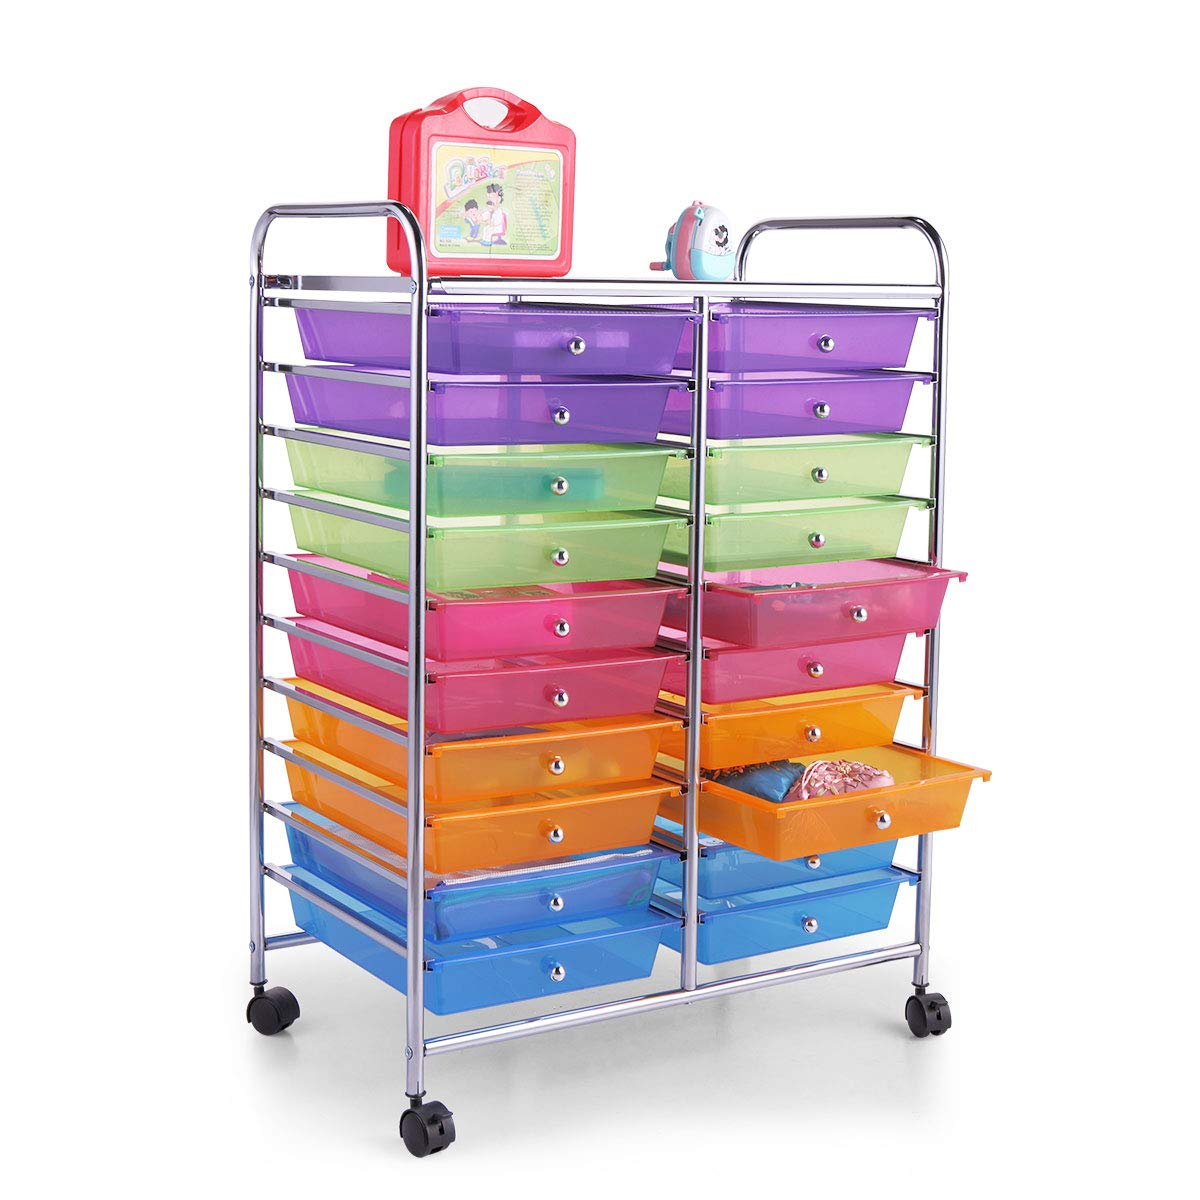 LAZYMOON Rolling Storage Cart Utility Organizer Plastic Drawer Cabinet with 20 Semi-Transparent Drawers by LAZYMOON